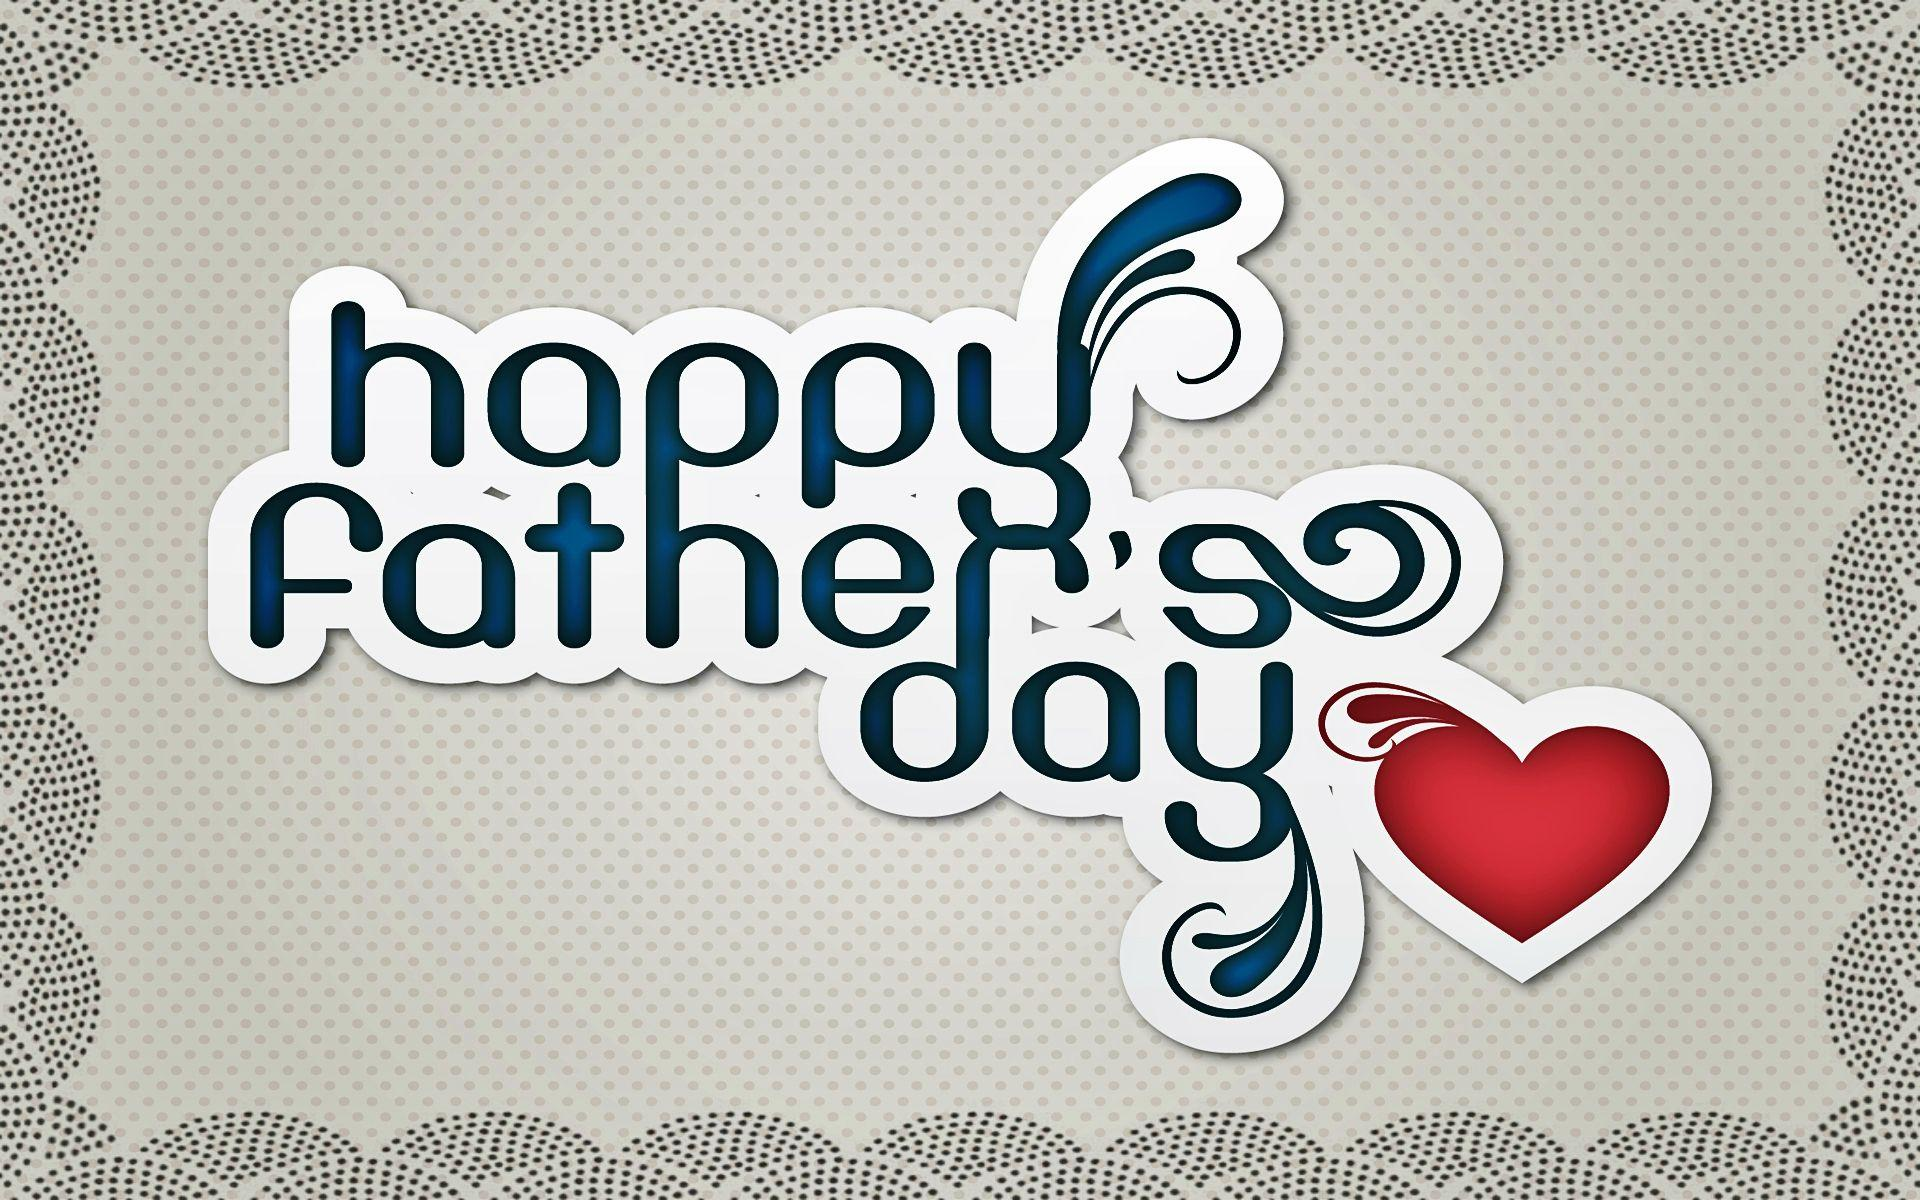 Happy Fathers Day Image: Fathers Day 2019 Pictures Photos Wallpapers